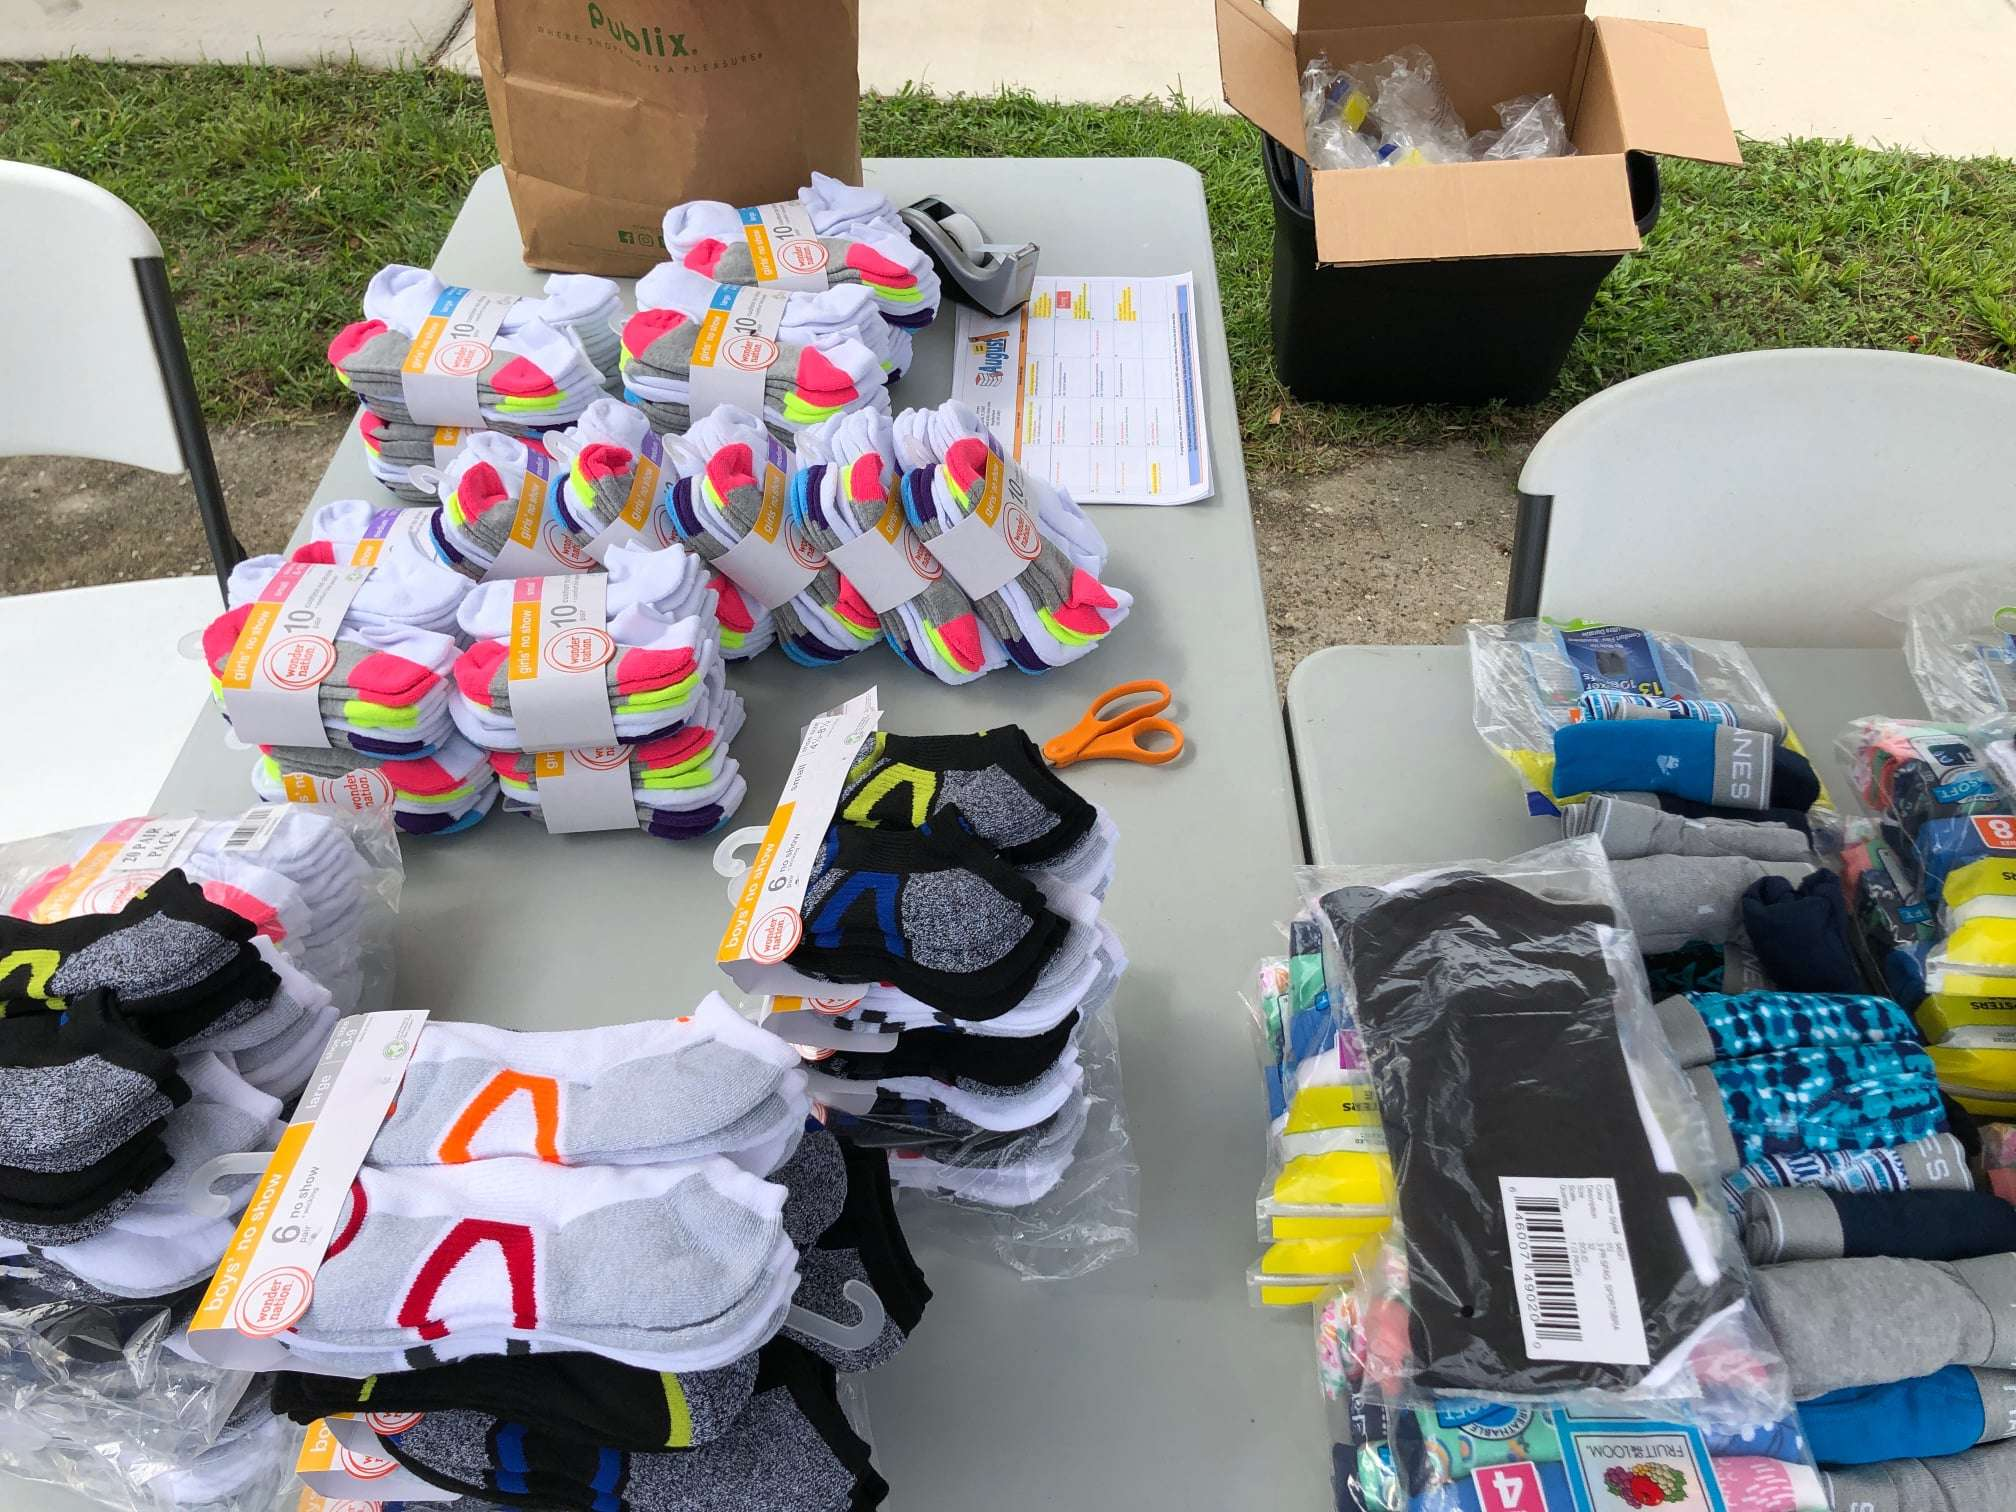 Packages of new kids' socks and underwear are laid out on a table to be given to families along with back-to-school supplies